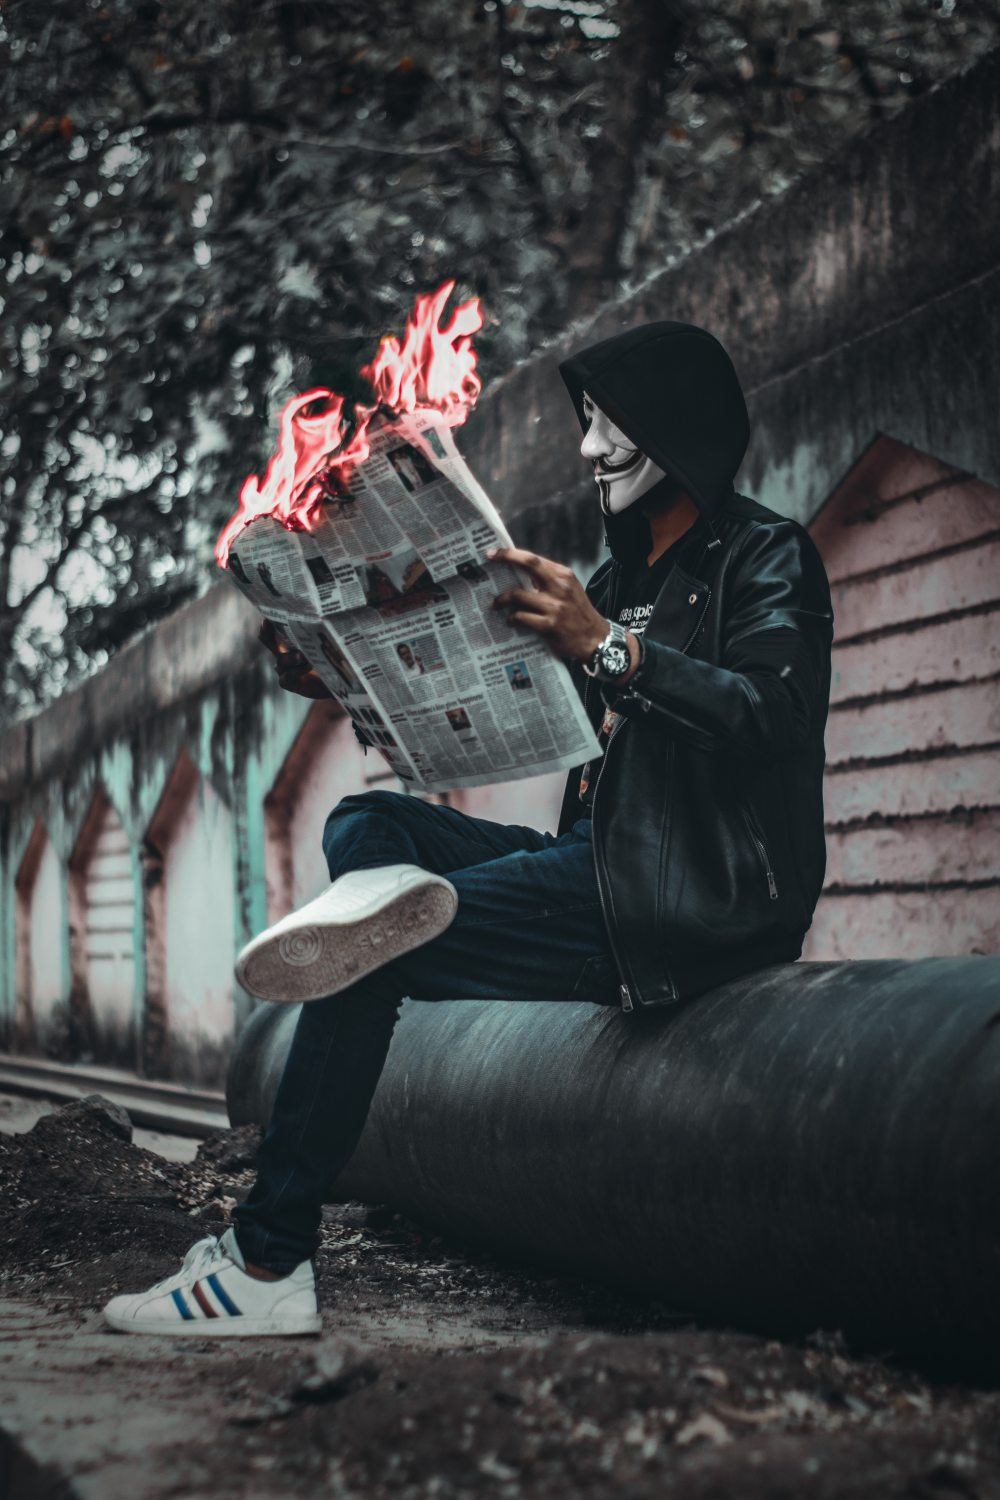 Man with mask and news paper on fire